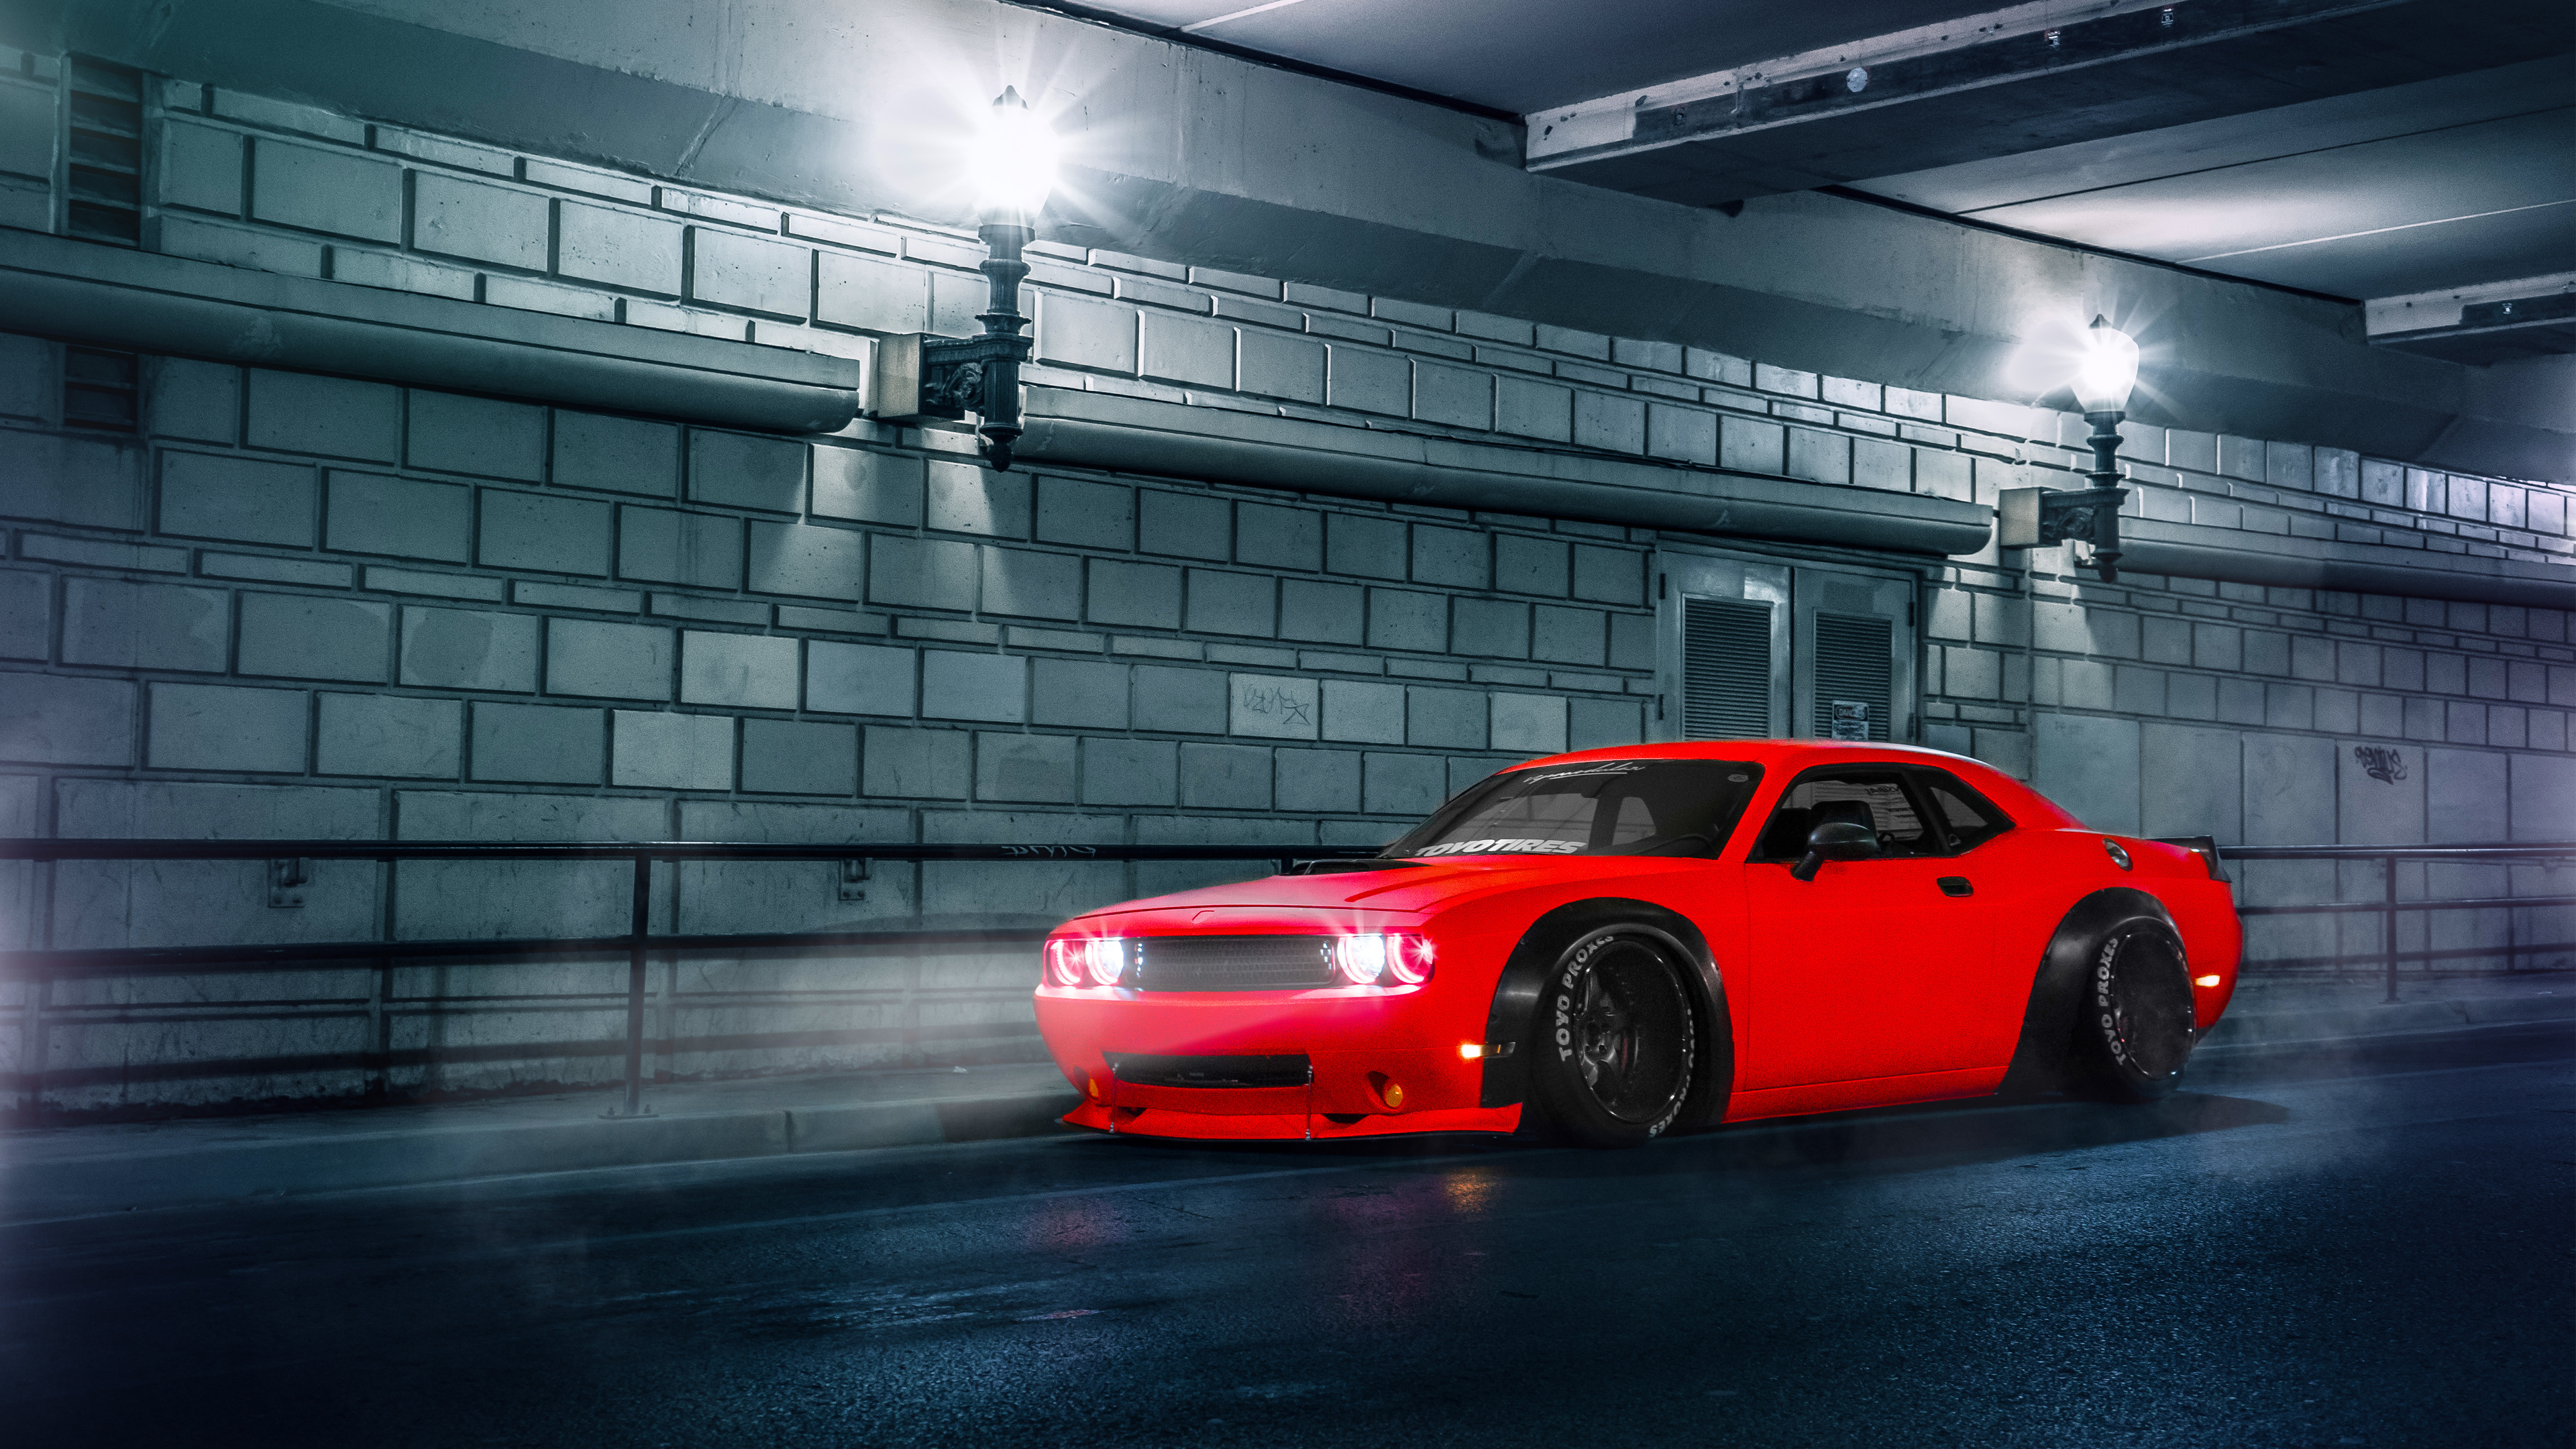 dodge challenger srt wallpaper | hd car wallpapers | id #5965